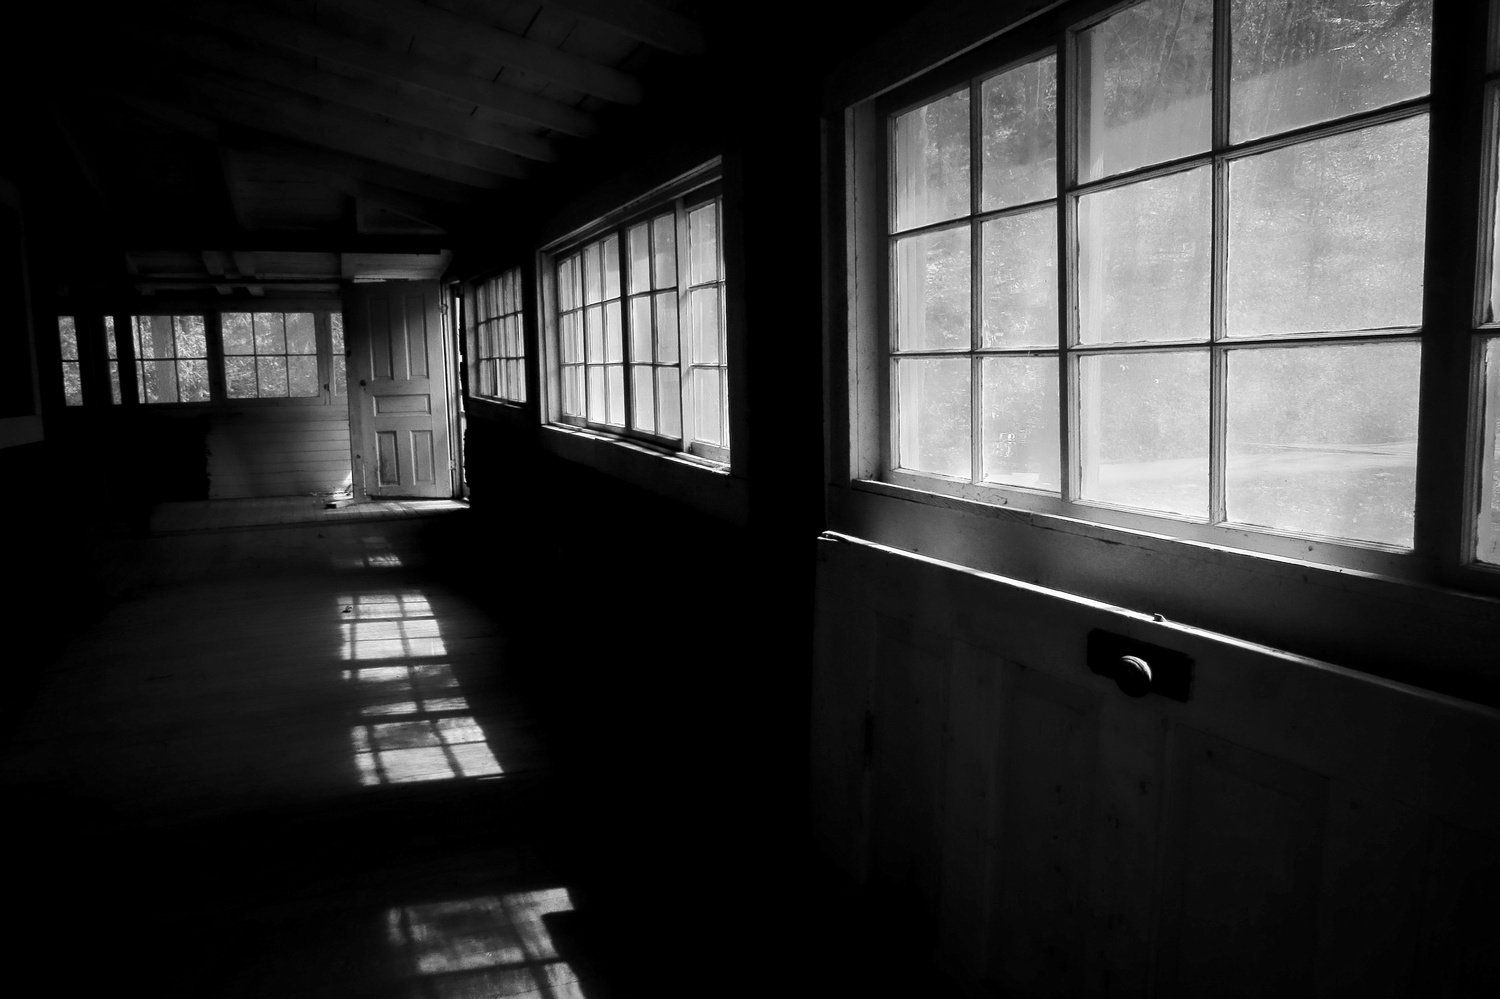 The Long Windowed Room by Ron Welch